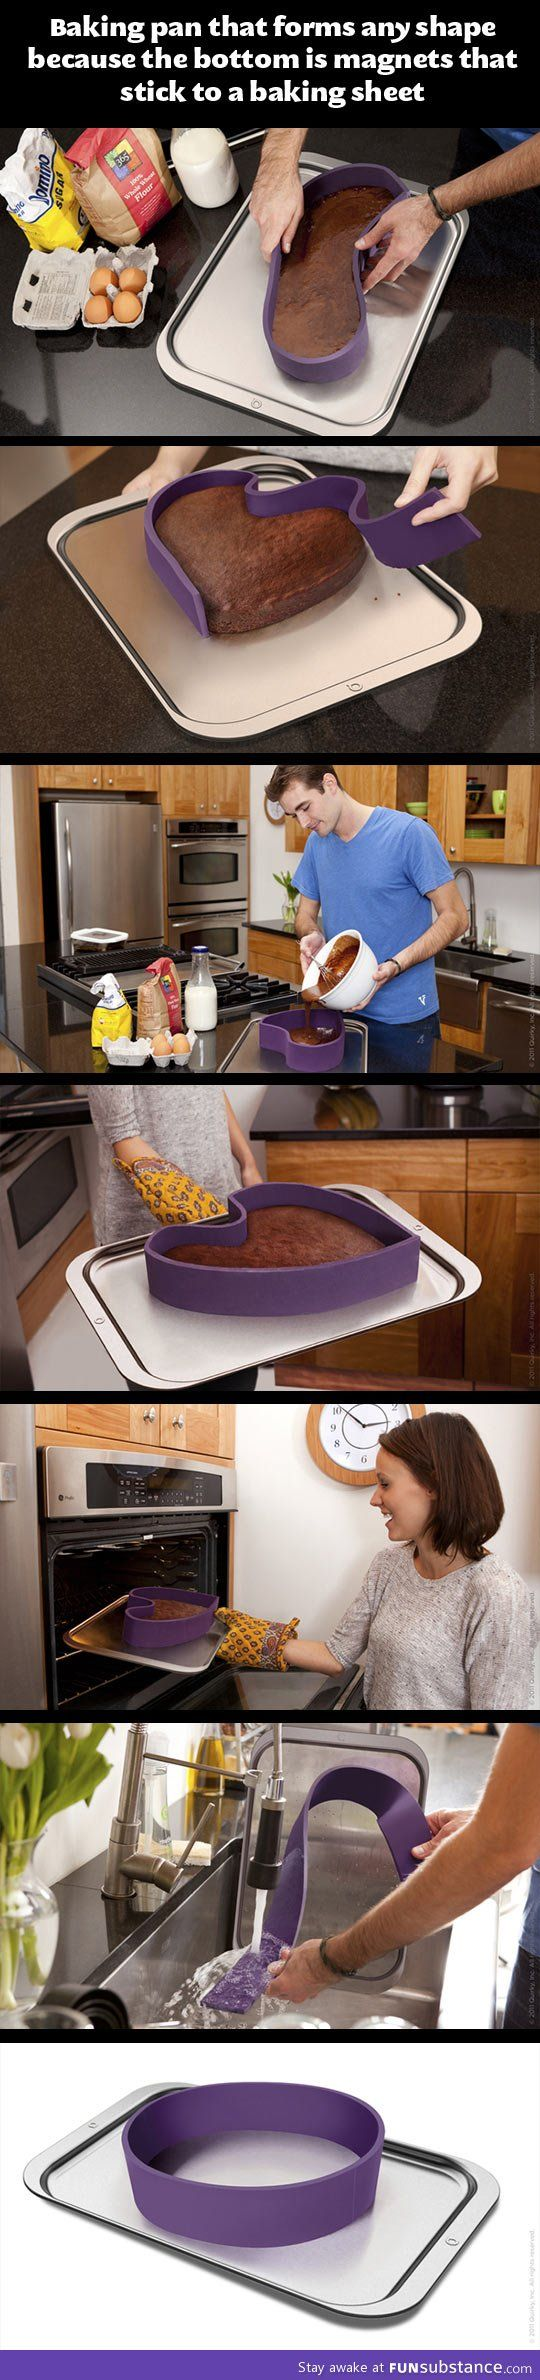 A baking pan with any shape